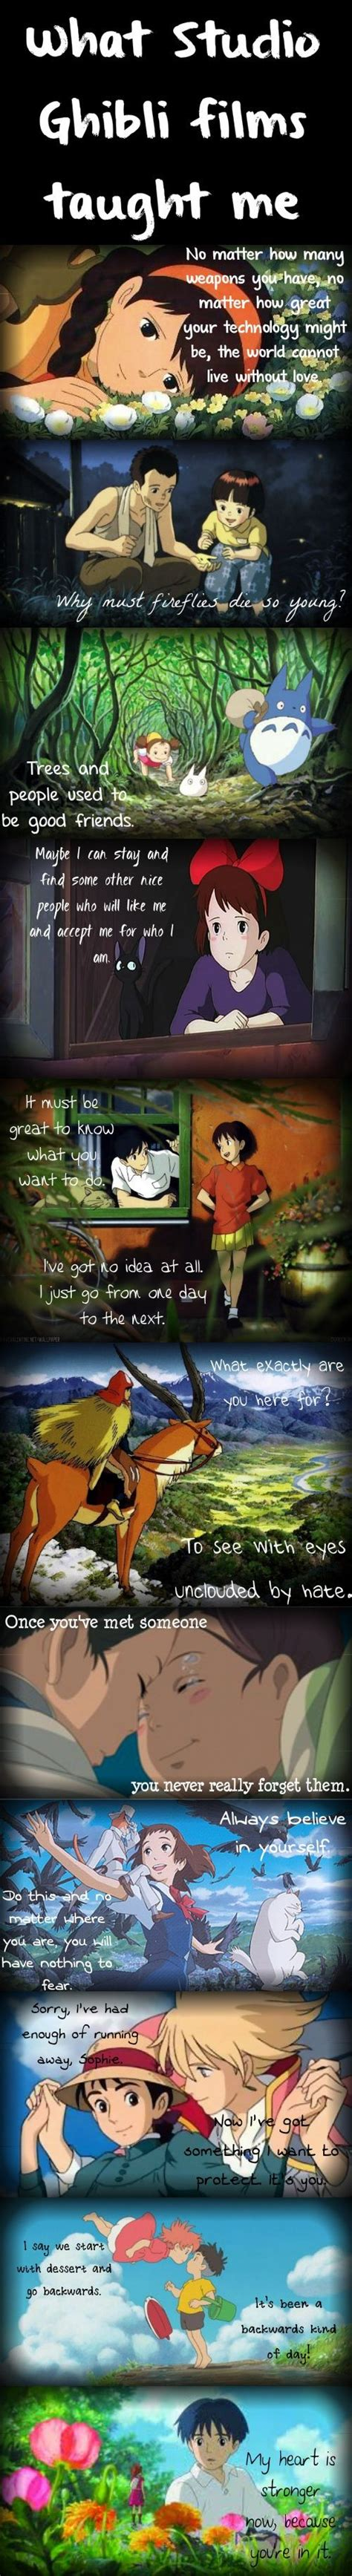 film ghibli studio 229 best miyazaki and studio ghibli images on pinterest